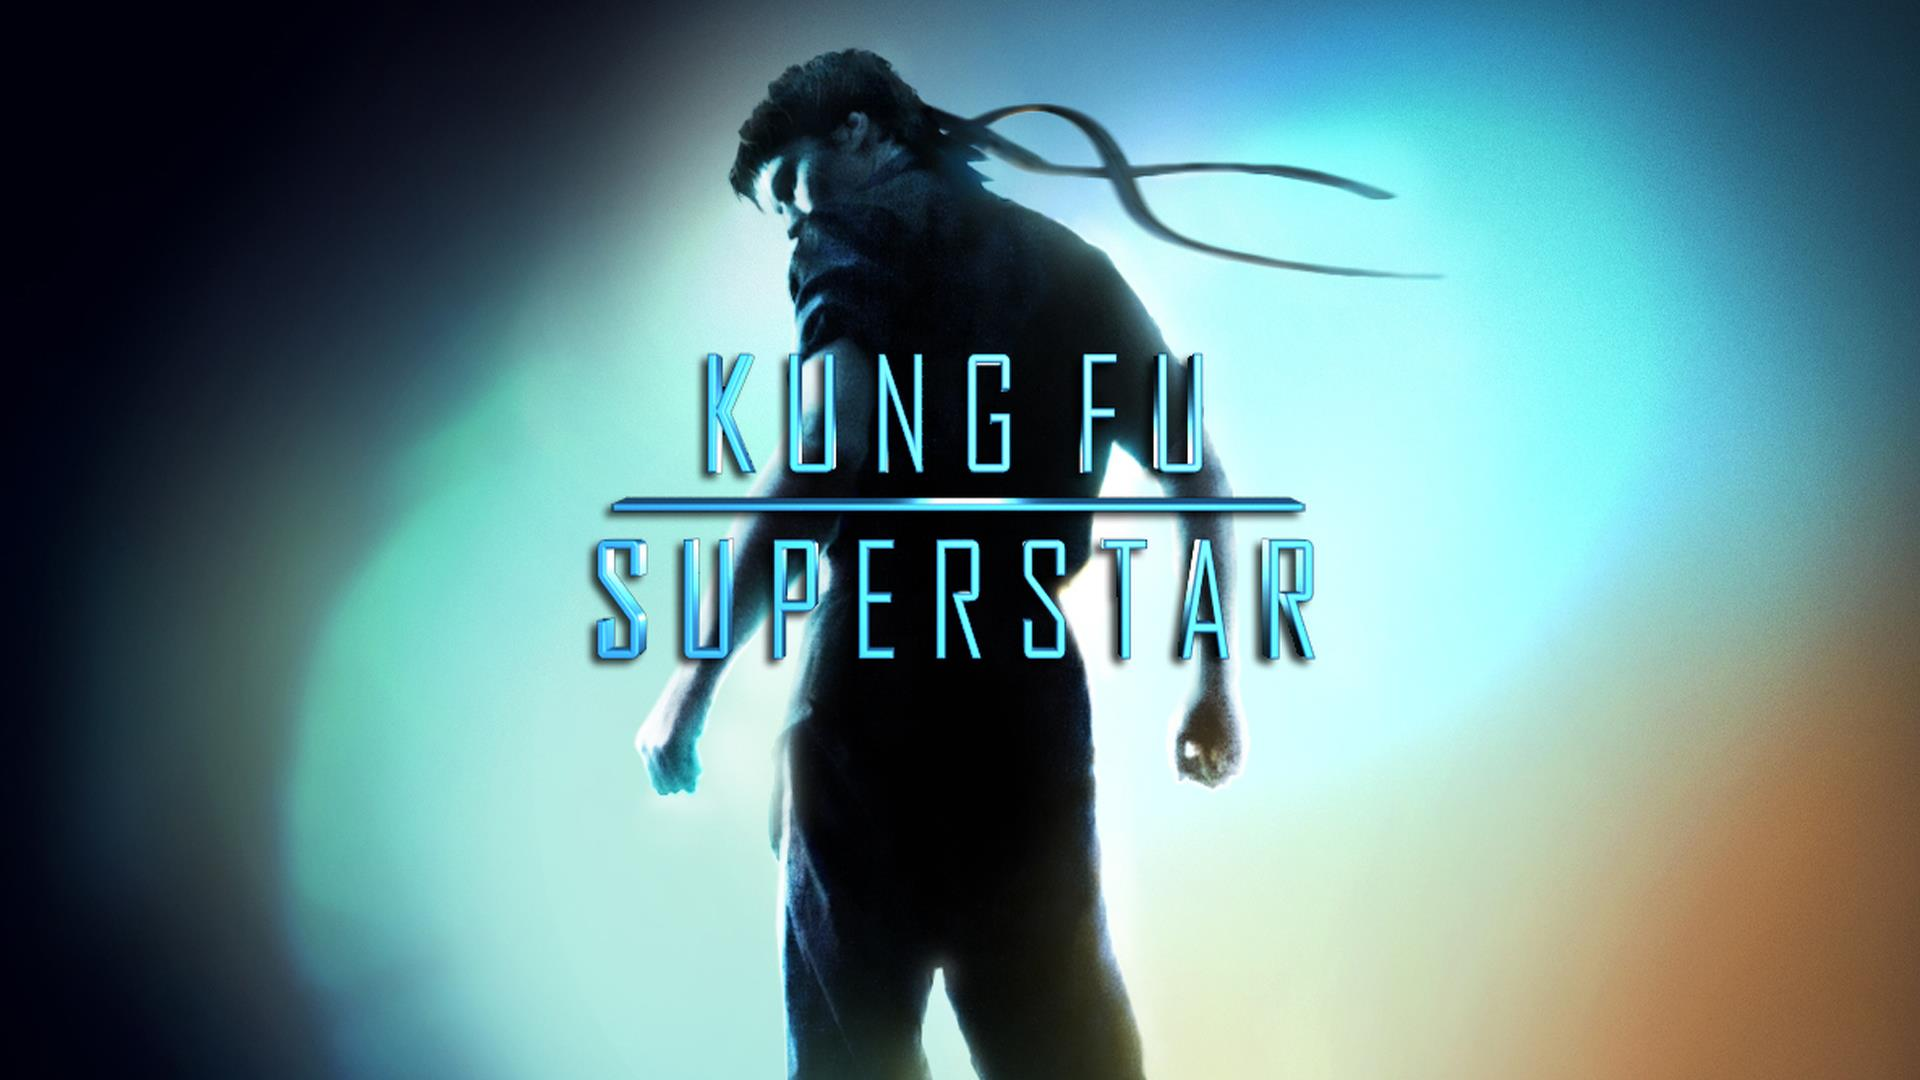 kung fu superstar full hd wallpaper and background image | 1920x1080